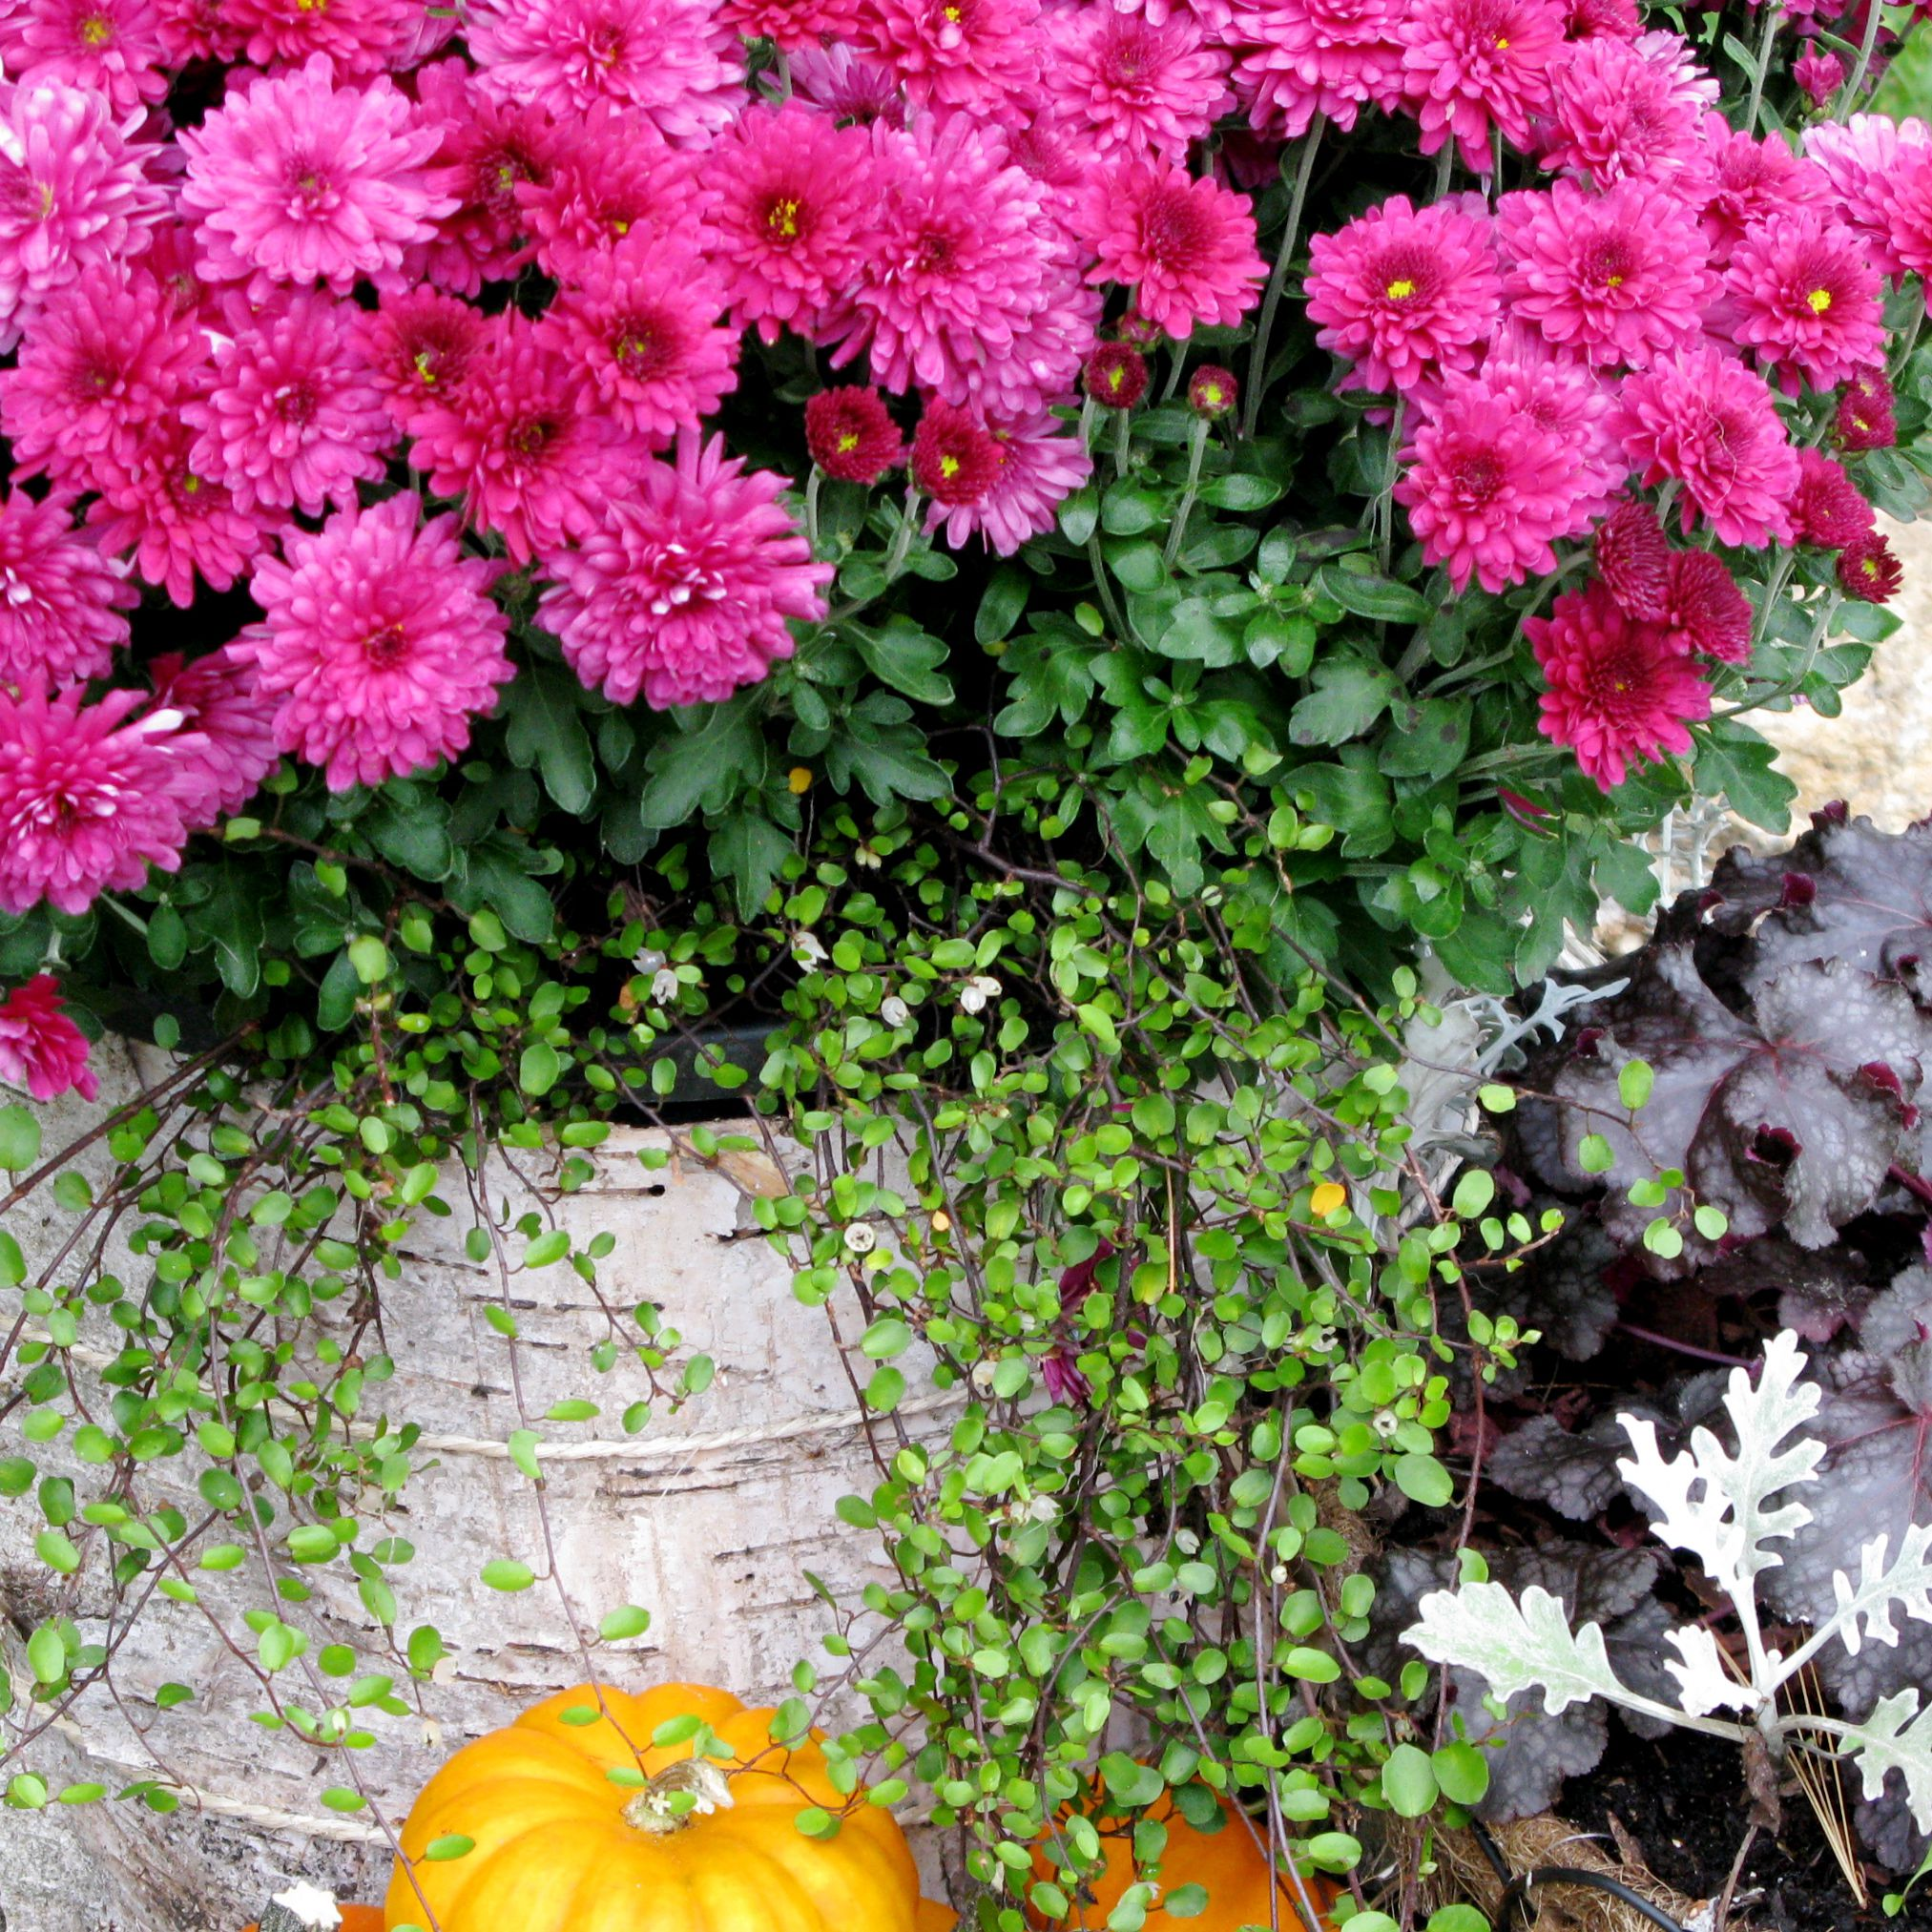 birch bark-covered container holding mums and wirevine